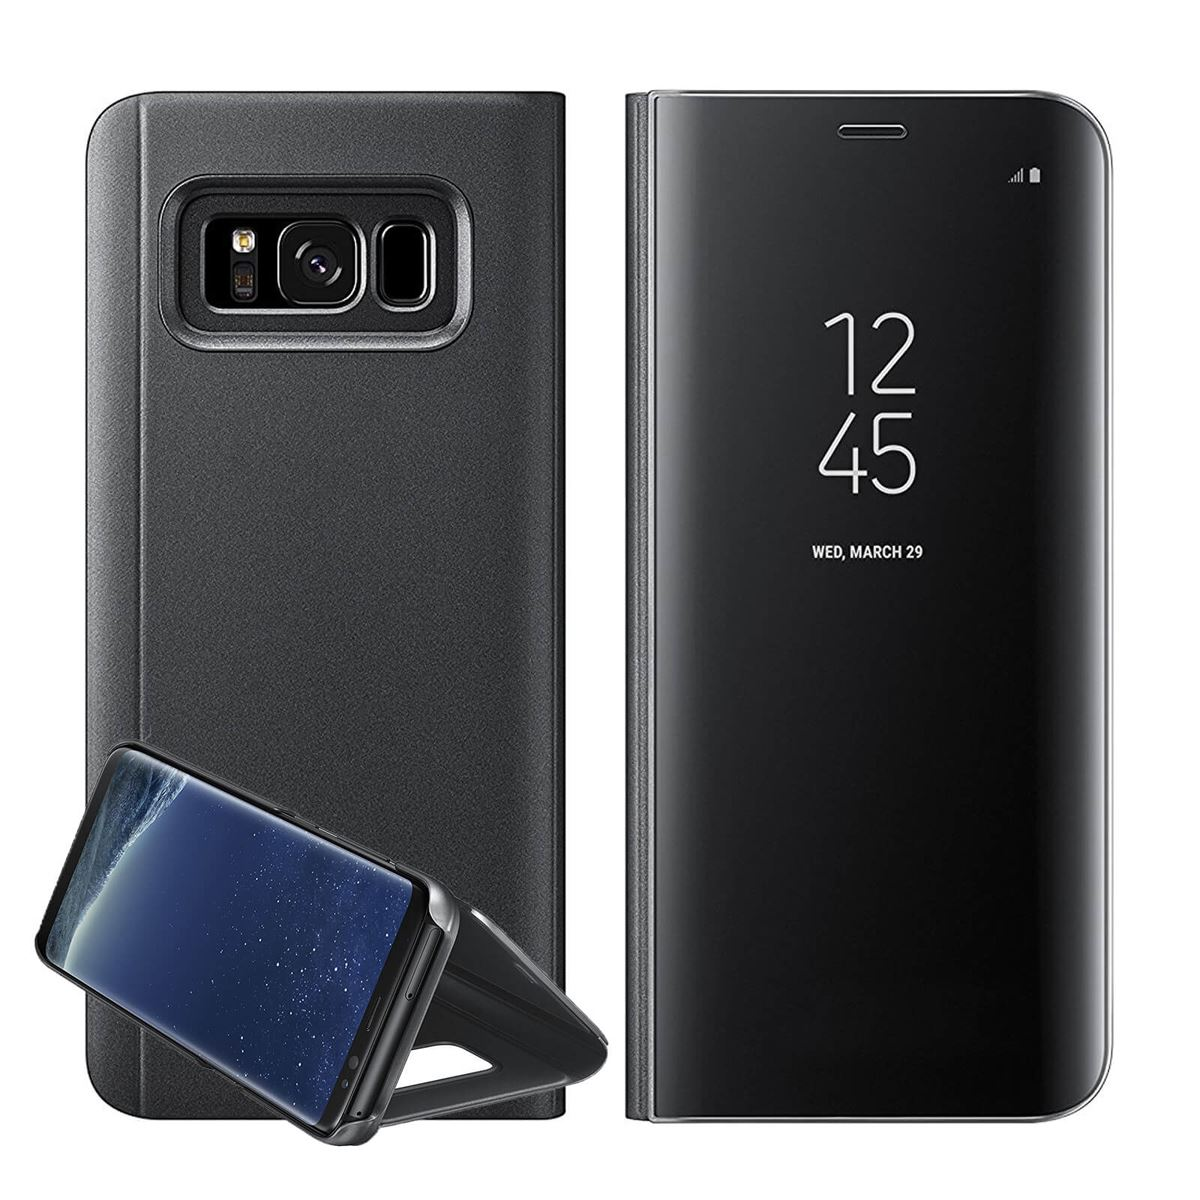 New-Samsung-Galaxy-S10-S9-S8-Smart-View-Mirror-Leather-Flip-Stand-Case-Cover thumbnail 19